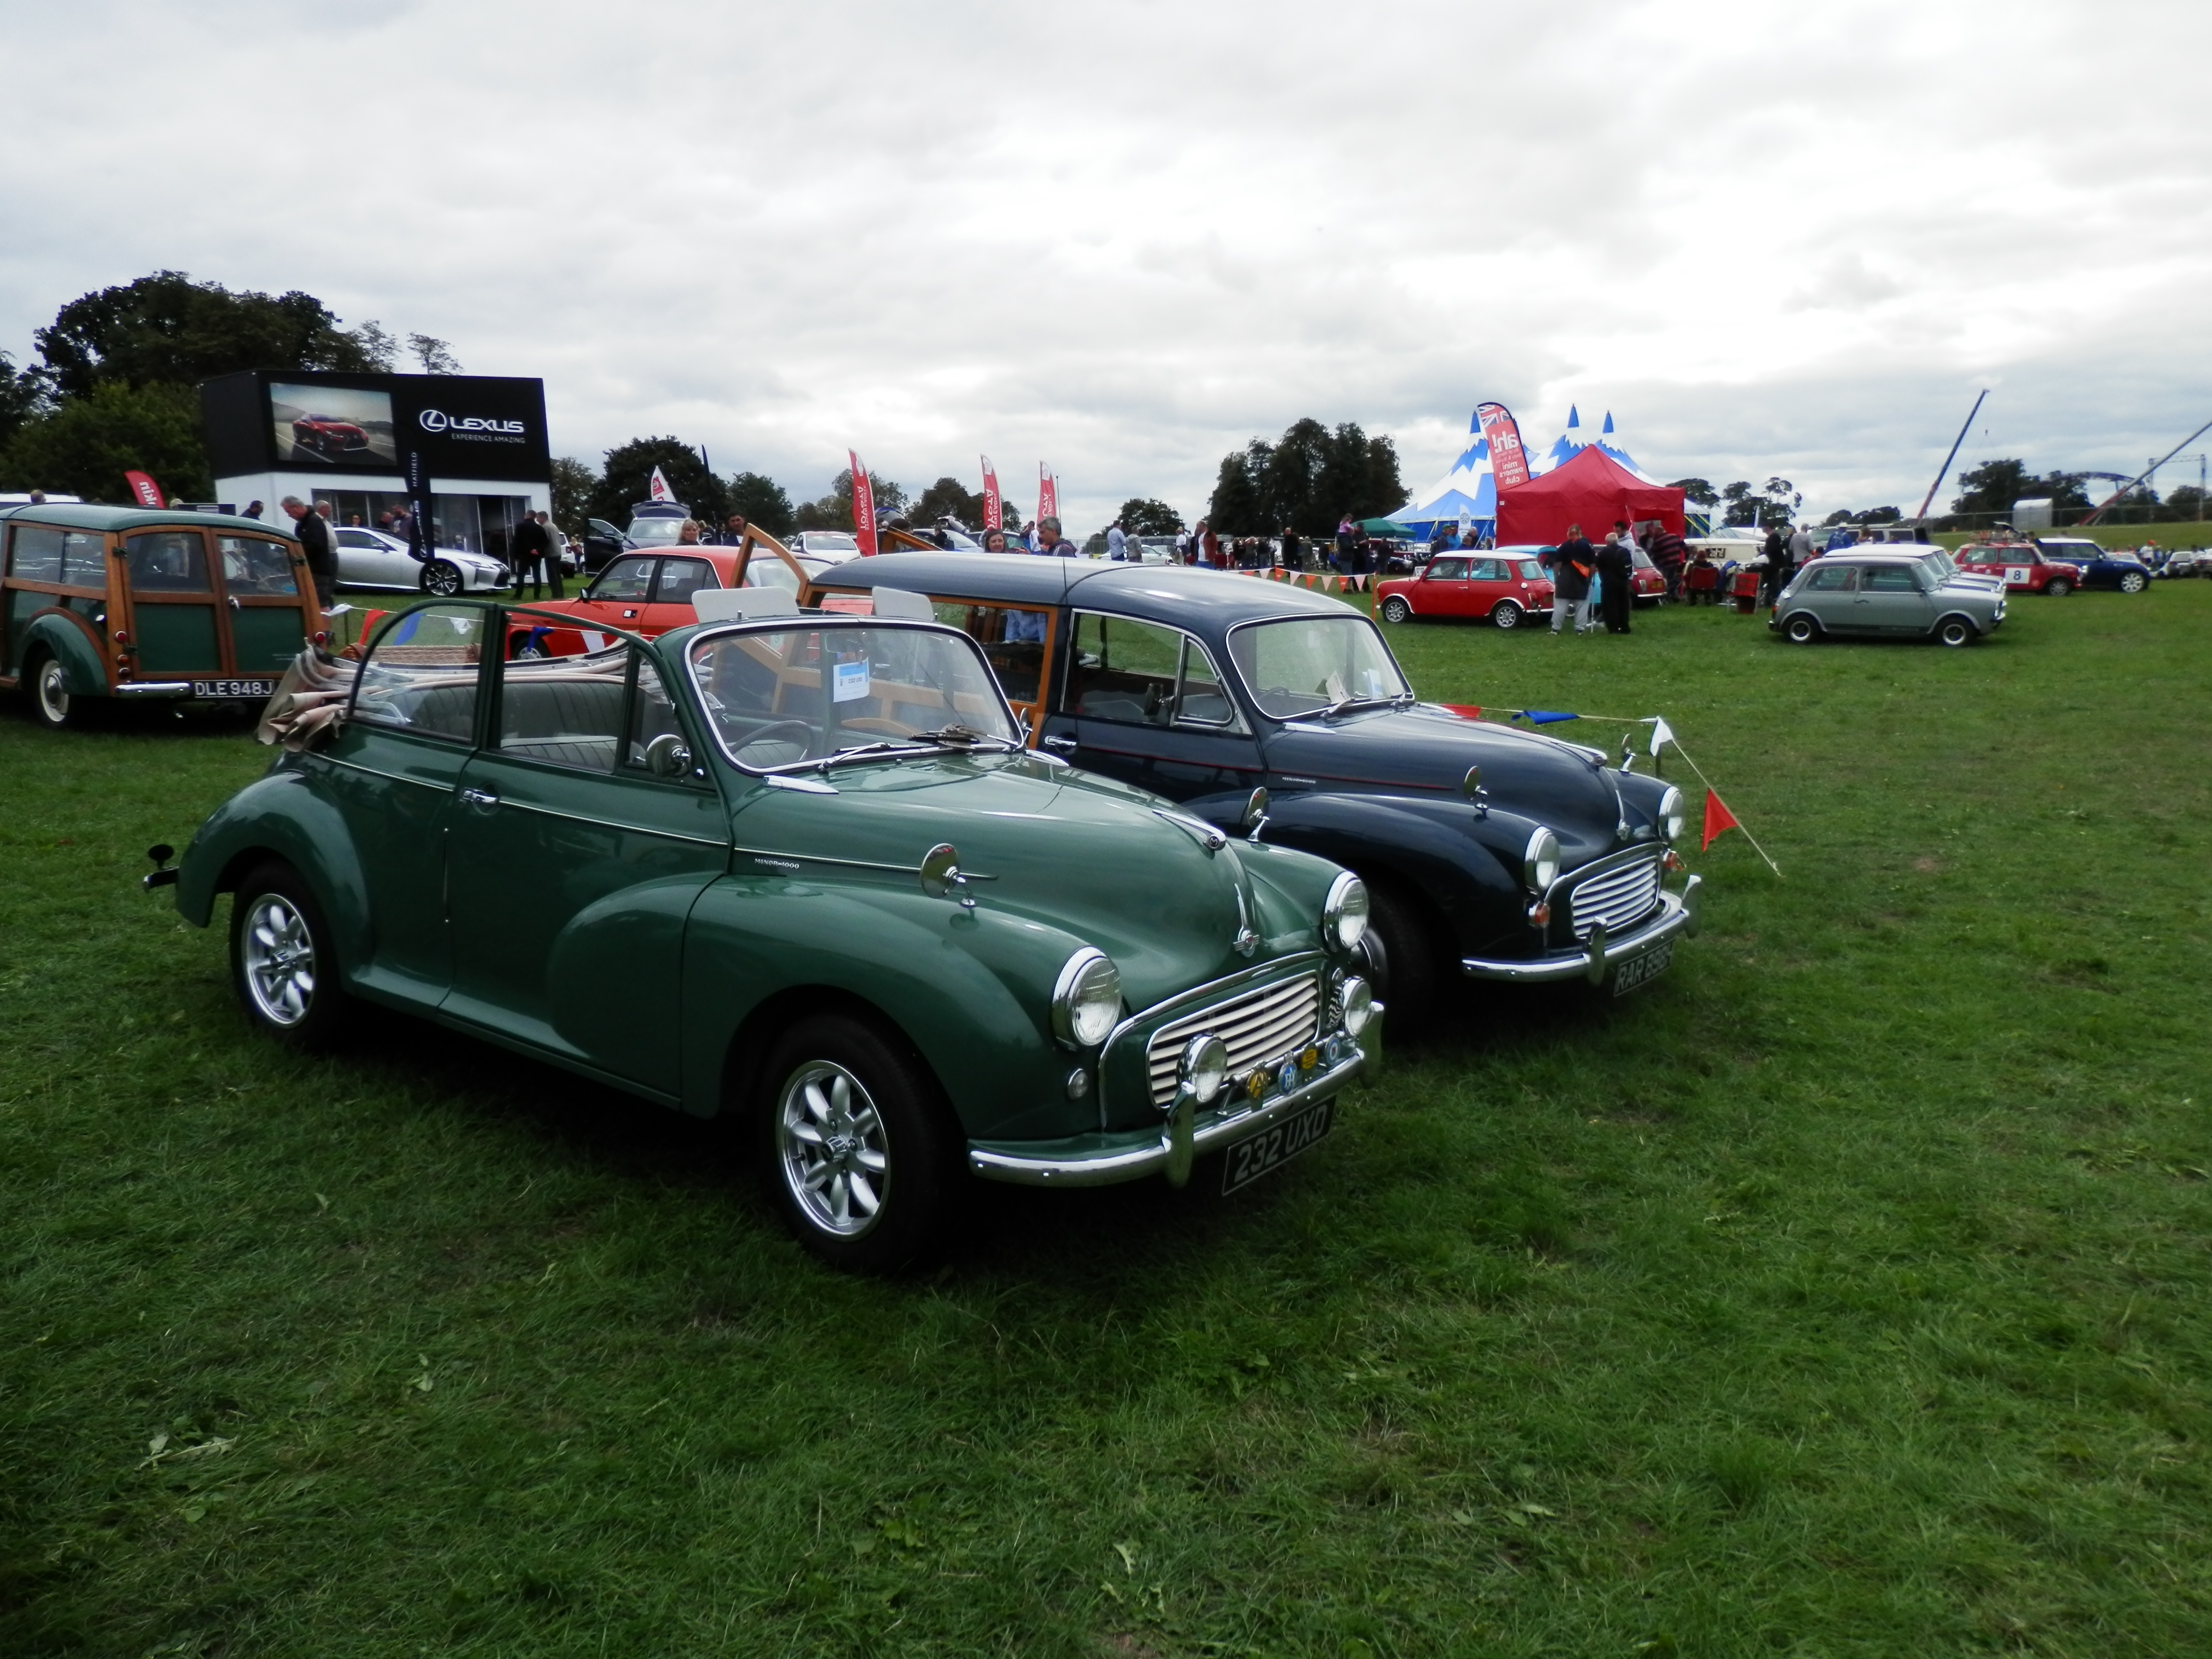 Knebworth Classic Car Show - 27 August 2018